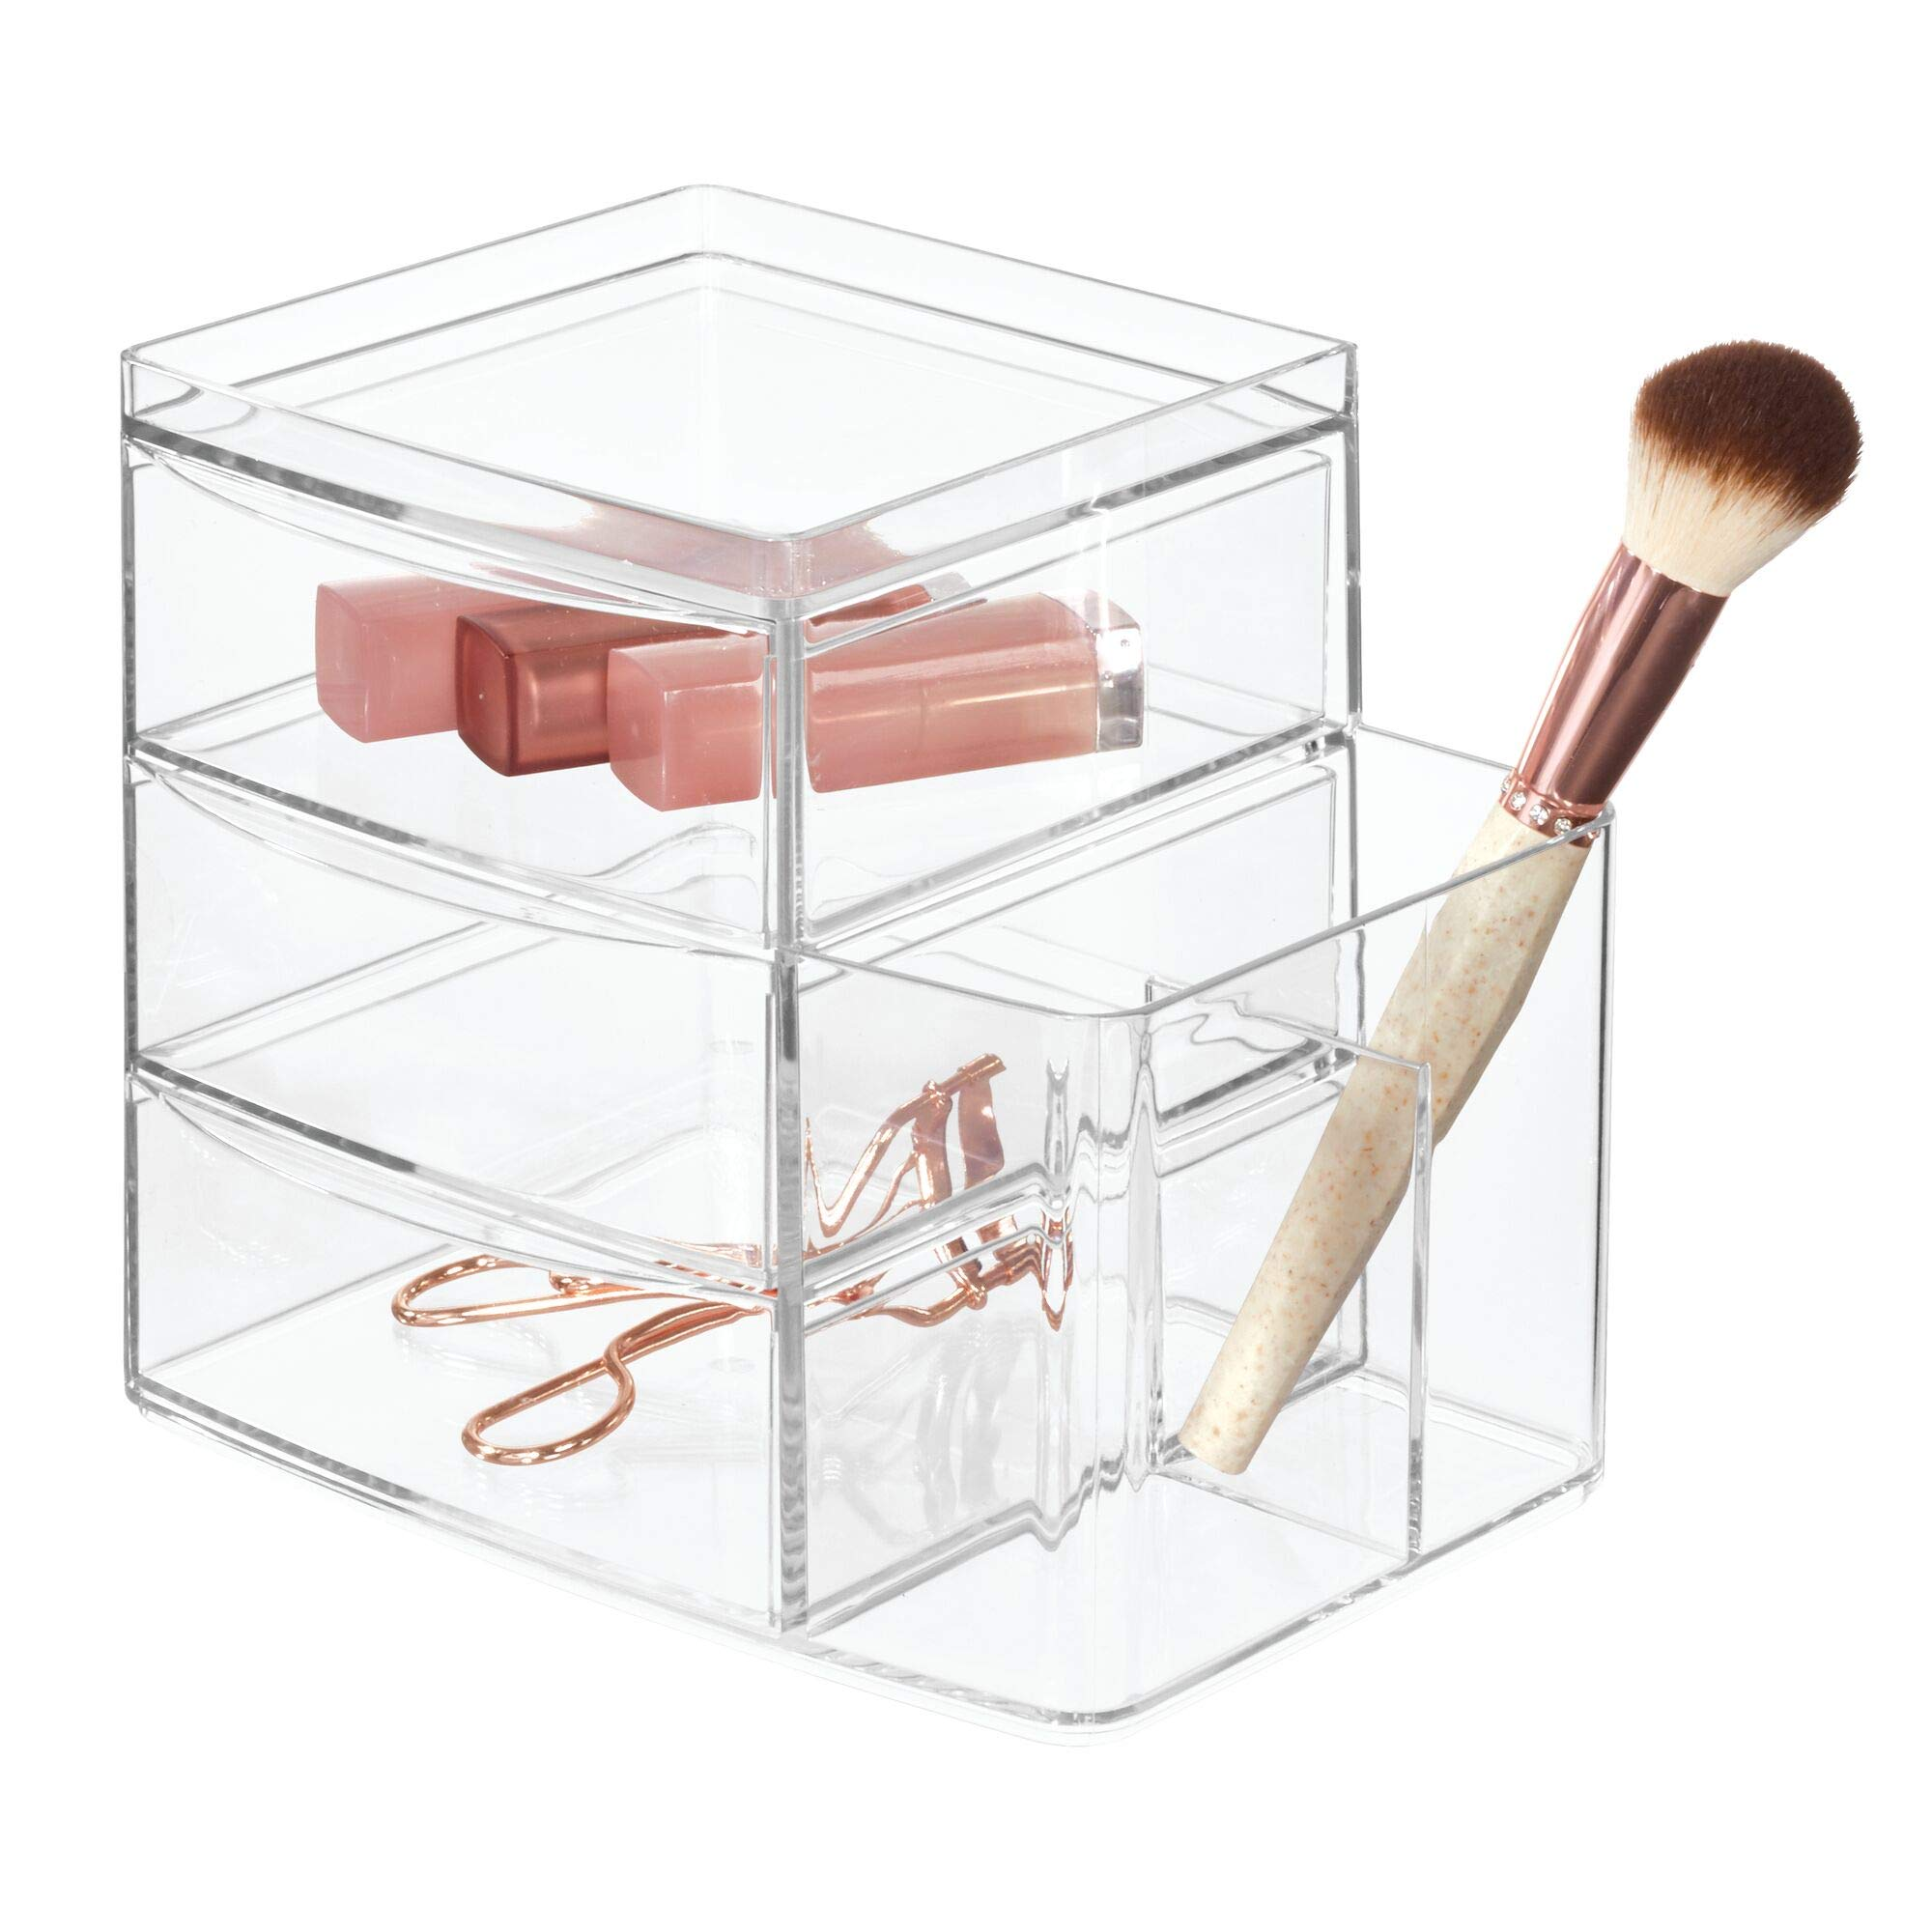 iDesign Clarity Bathroom Vanity Countertop Multi Level Organizer for Cosmetics